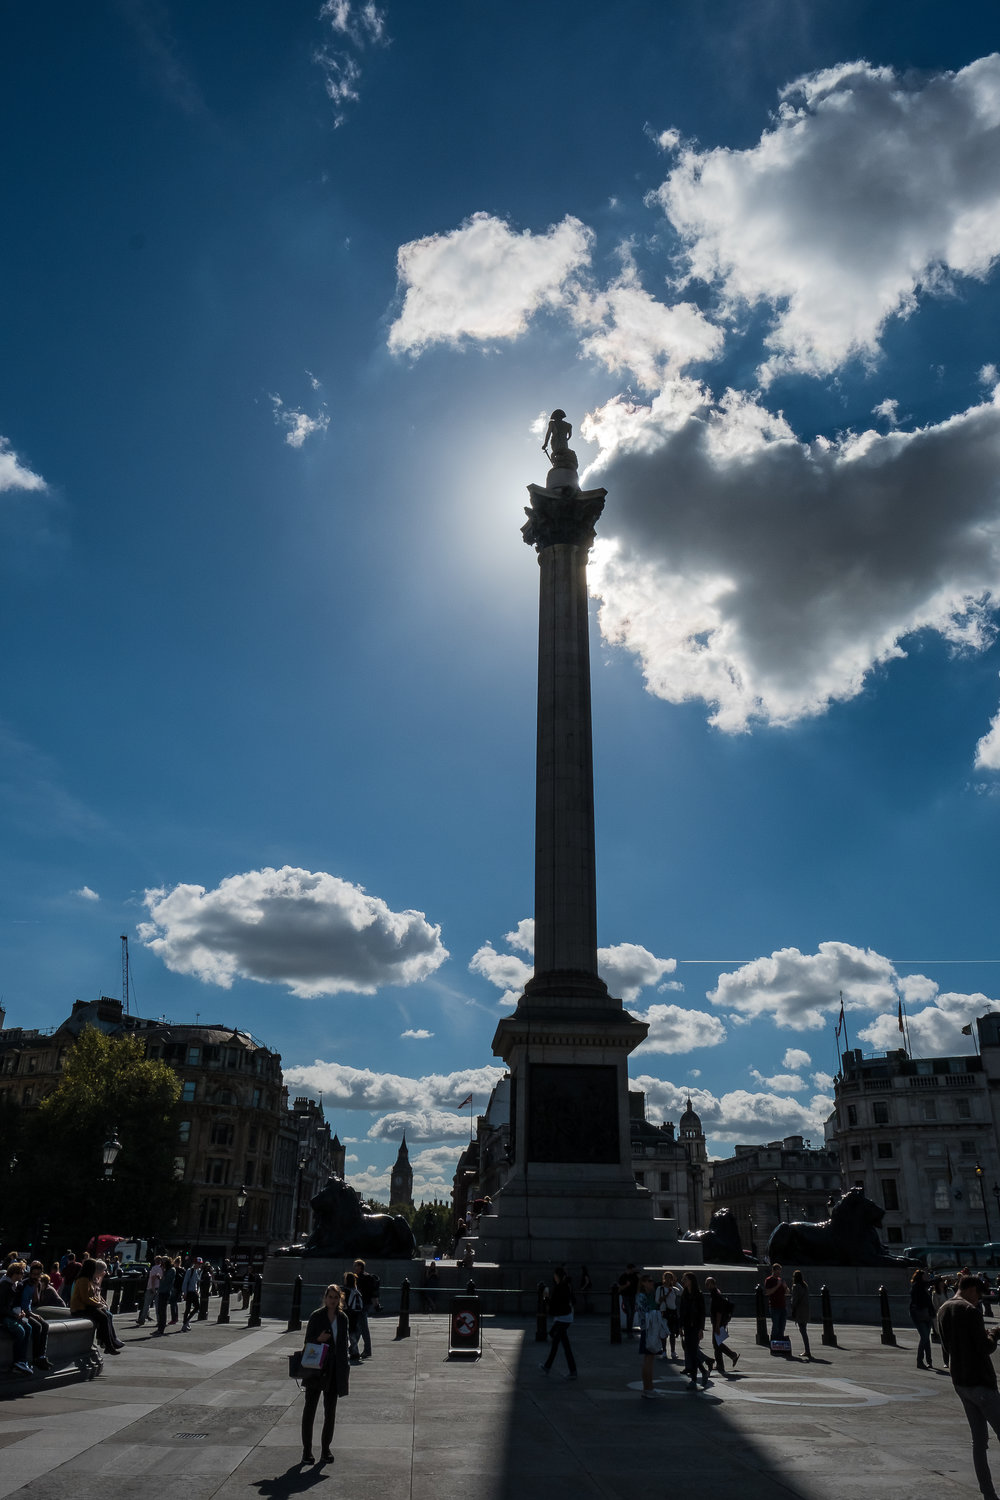 The rod of Trafalgar...  Well, it's actually called the Nelson's Column, but the Rod sounds much more interesting.